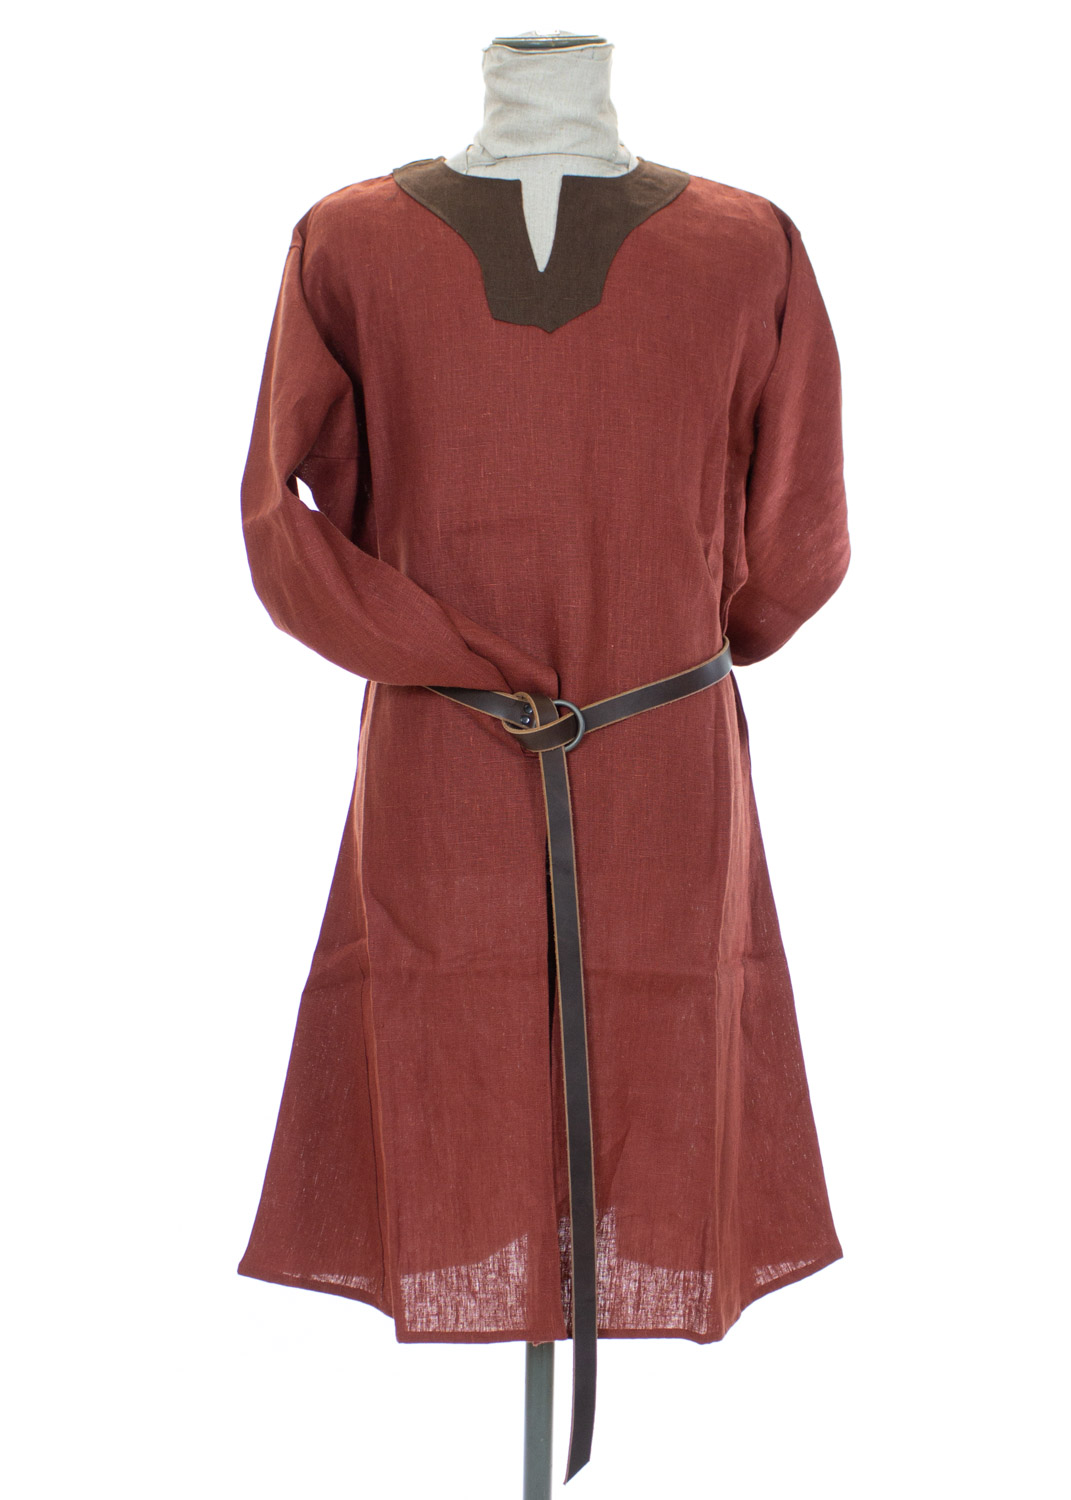 Normandic Kirtle in linen